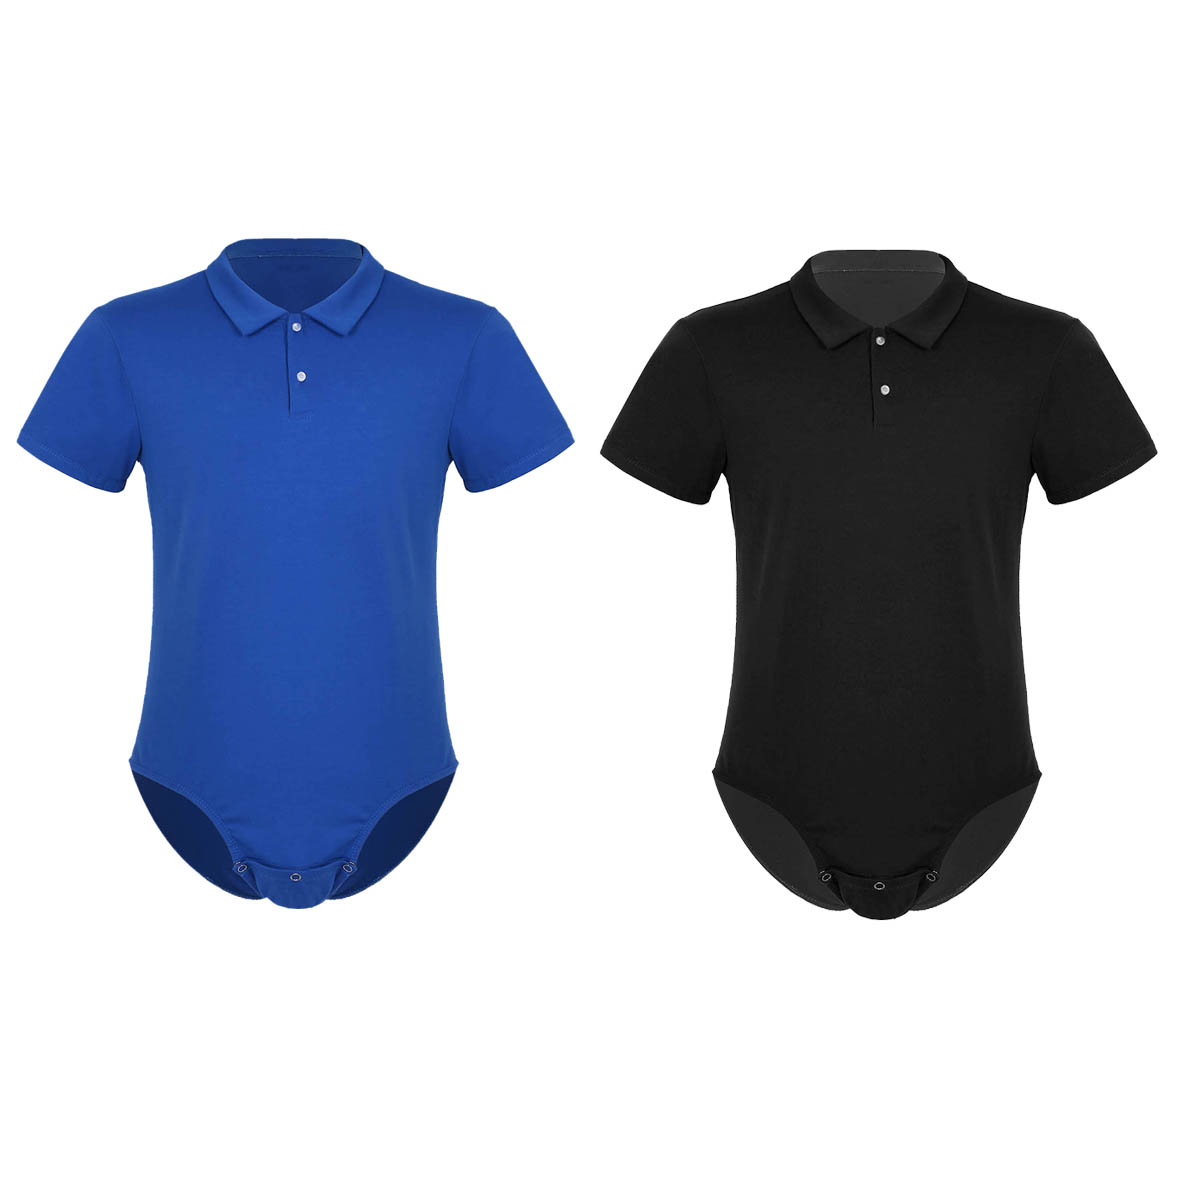 Image 2 - TiaoBug Men Short Sleeves Turn down Collar Snap Crotch Shirt Bodysuit Romper Pajamas Sexy Male One piece Casual Shirts Costume-in Casual Shirts from Men's Clothing